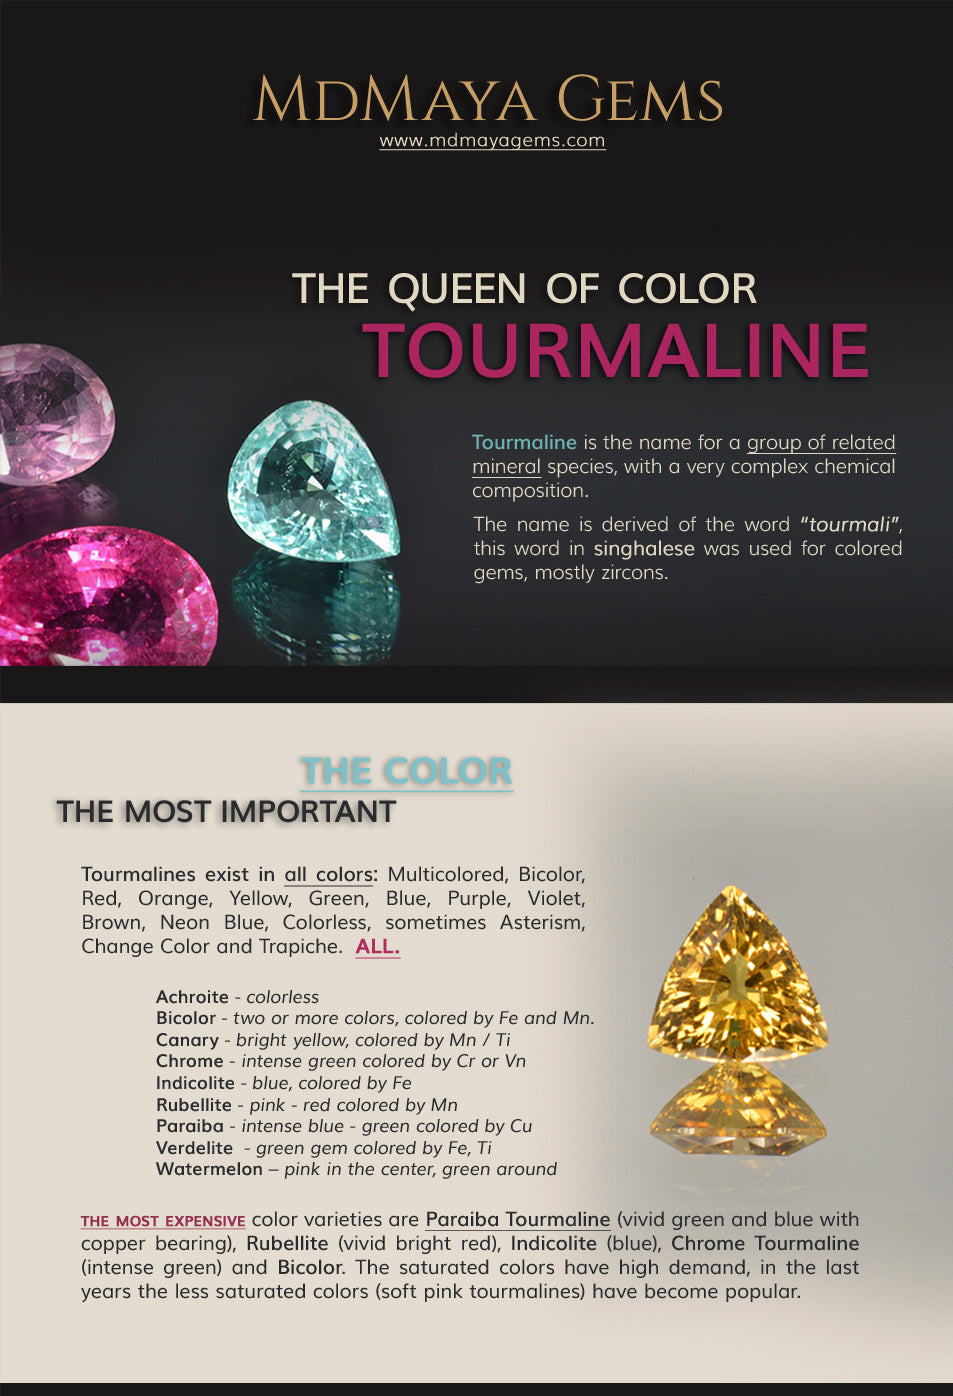 The Queen of Color, Tourmaline.